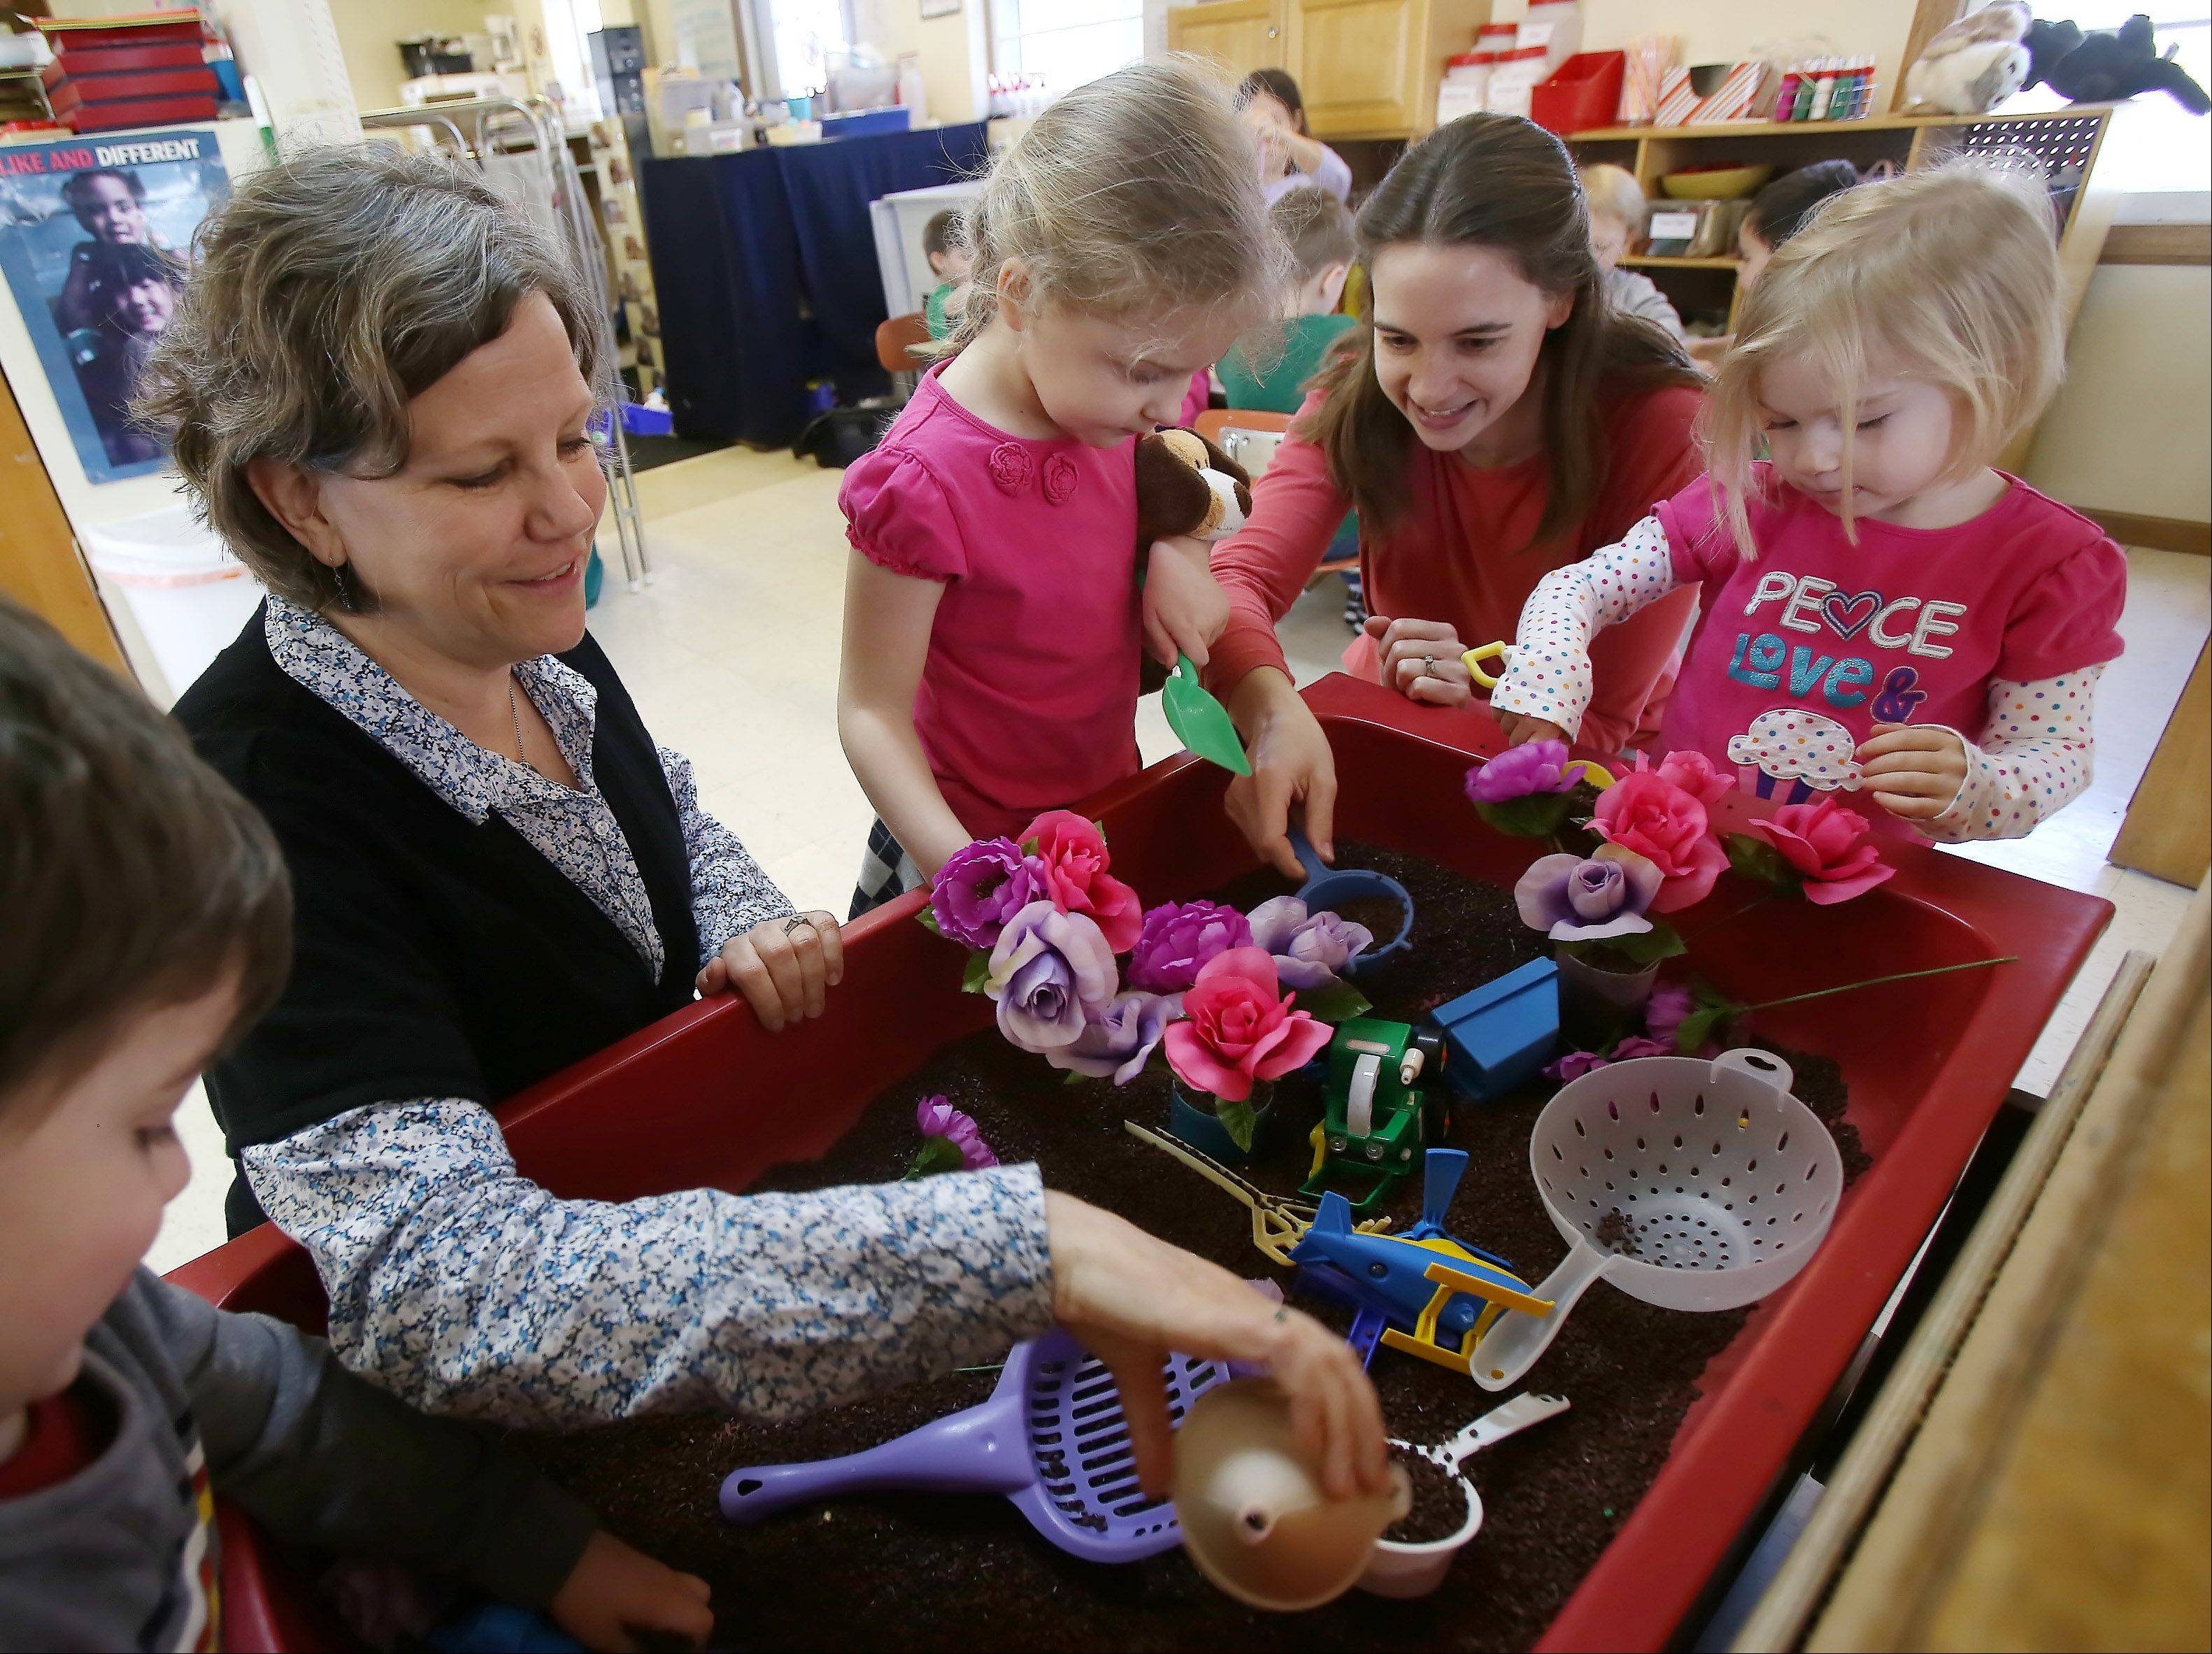 Teacher Laura Davenport, left, plays with Nadia Garrelts, 4, her mother, Erica, and Kayleigh Curran, 4, working to make spring flowers as teachers and parents work with children in the one-room class at Mundelein Cooperative Preschool.